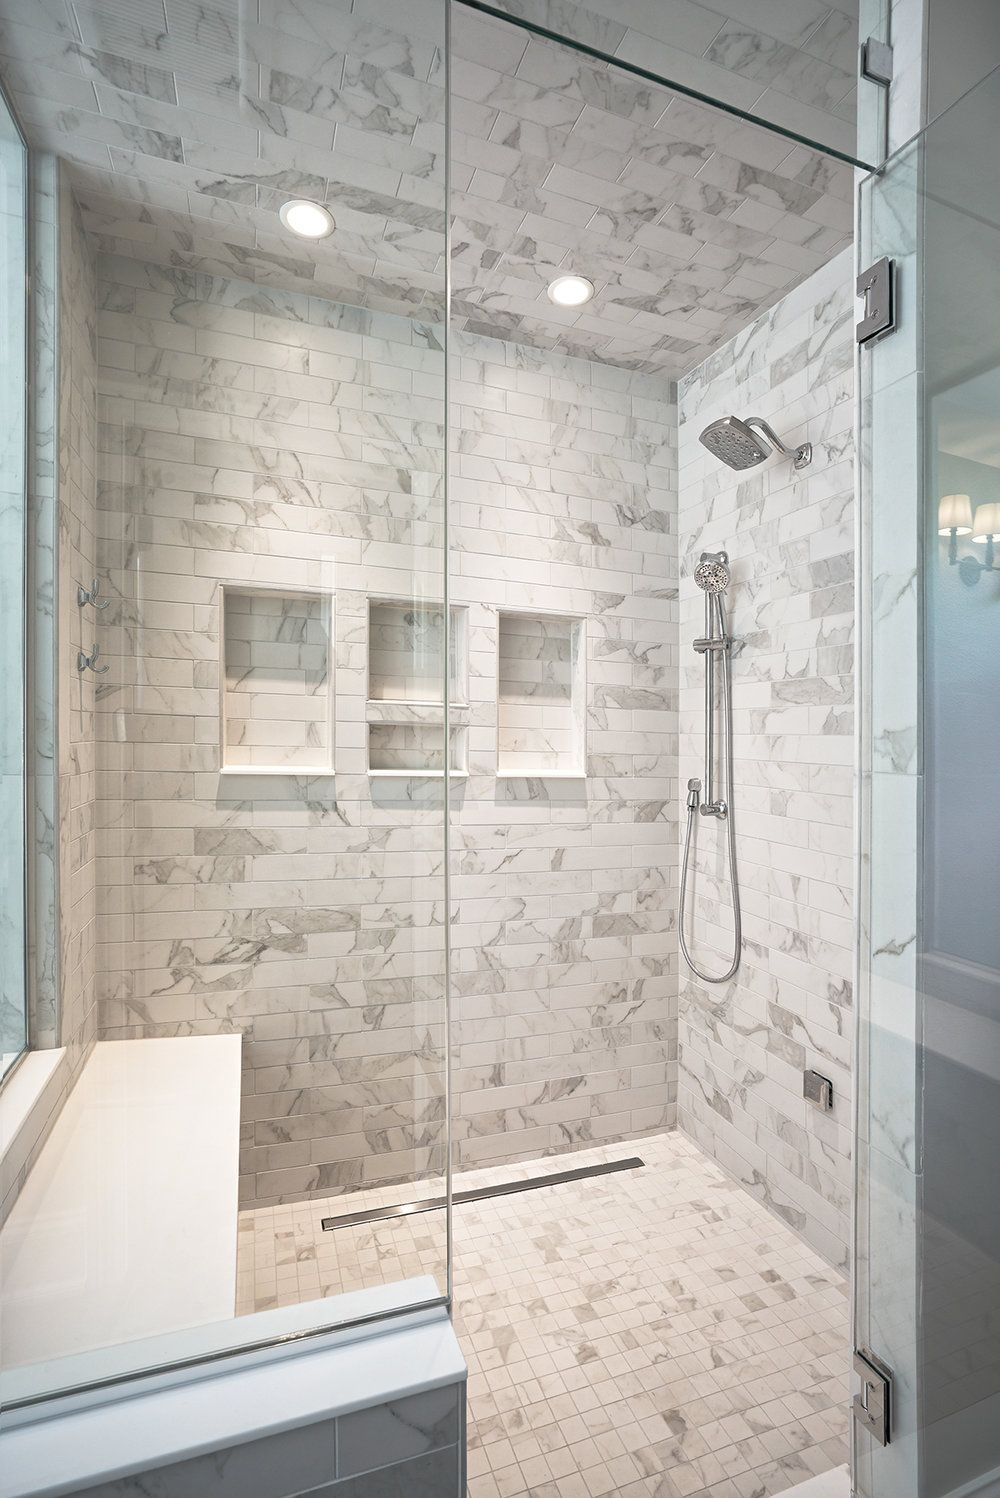 A forever home with natural accents | Bathrooms | Pinterest ...